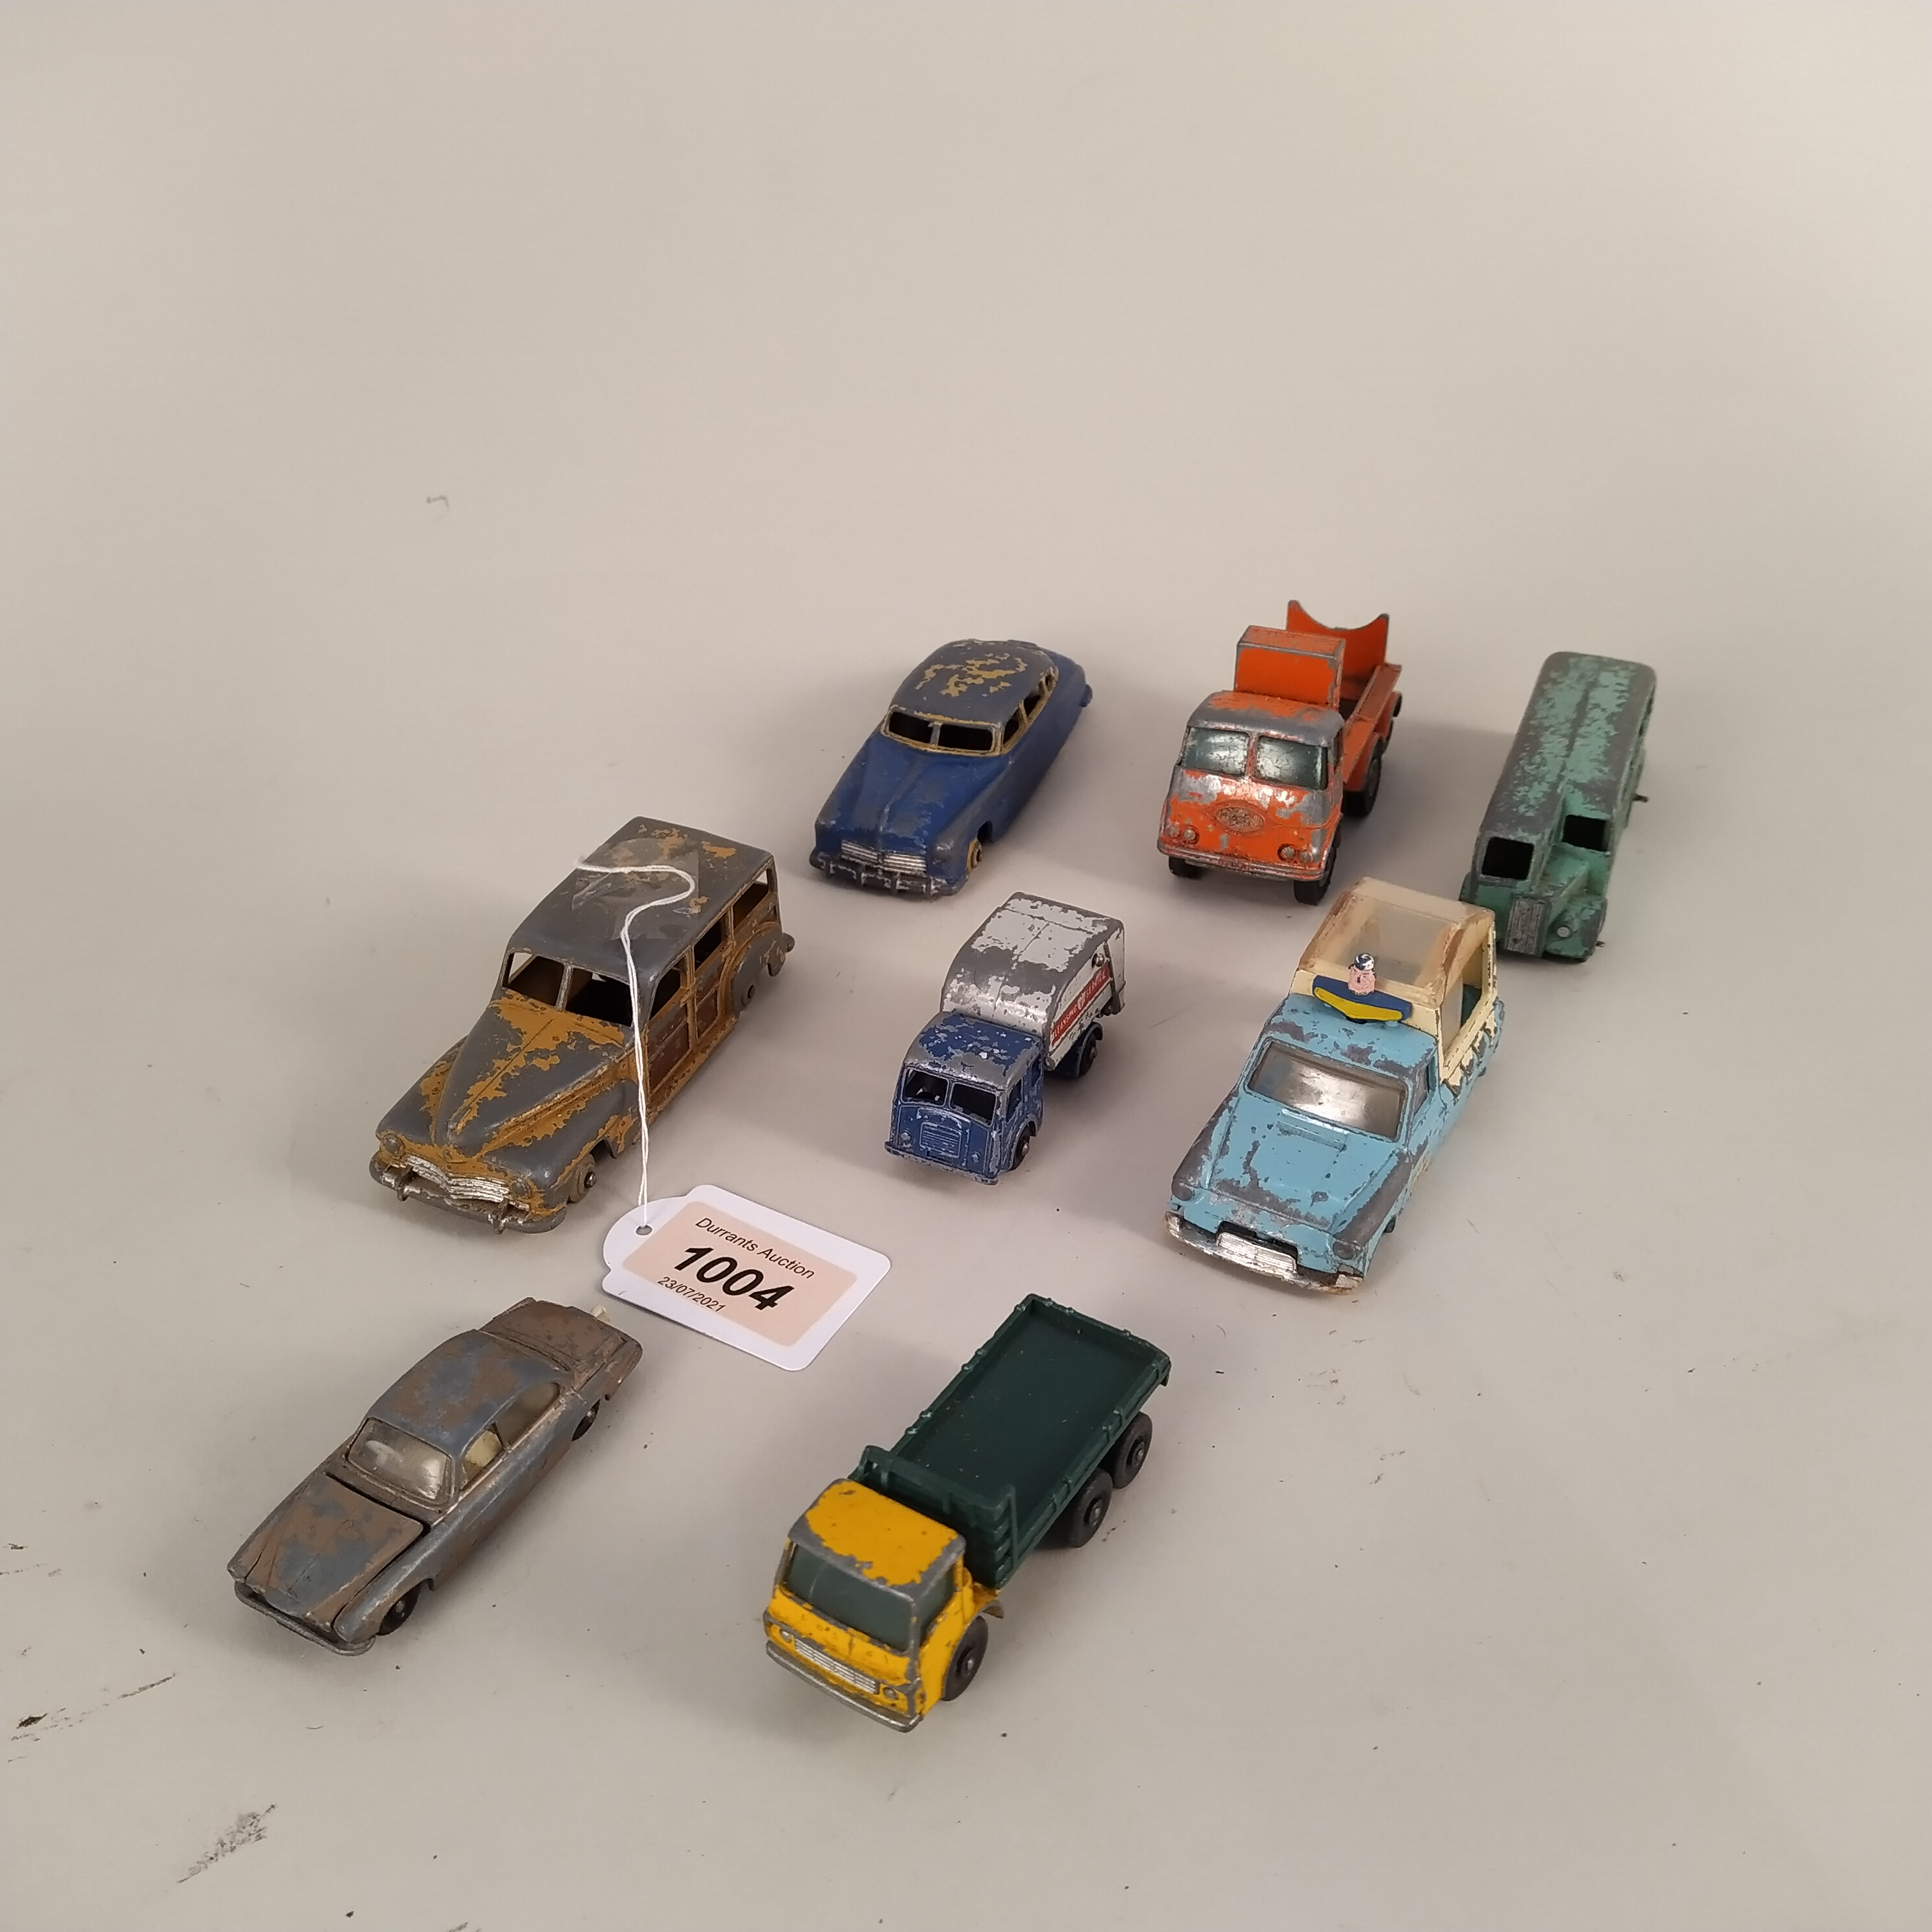 Vintage Dinky and Corgi toy cars (very playworn condition, some lacking wheels), - Image 3 of 3